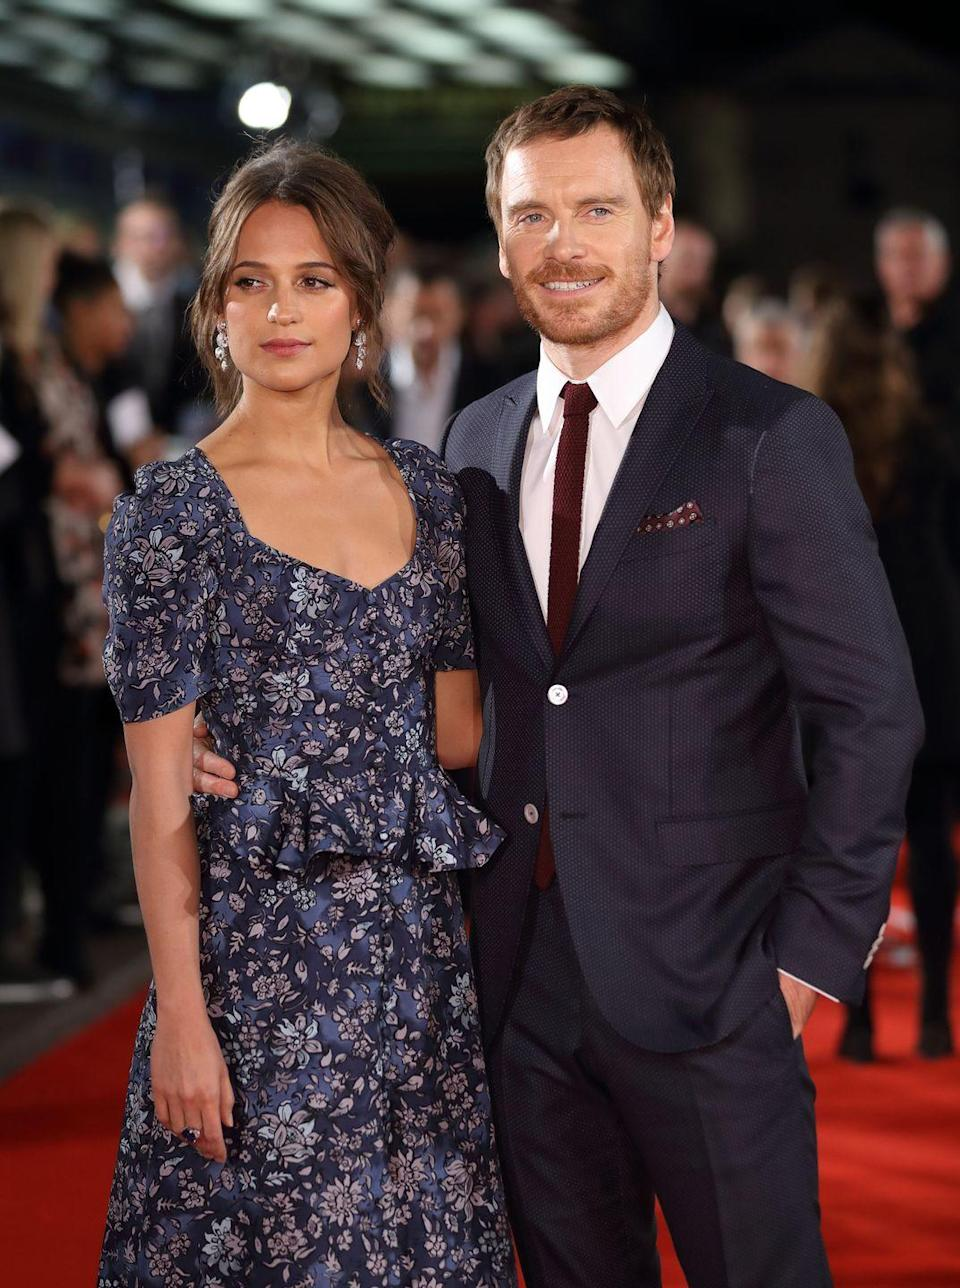 "<p>Vikander and Fassbender, who have <a href=""https://www.eonline.com/news/1114370/alicia-vikander-and-michael-fassbender-light-up-fashion-week-with-rare-outing"" rel=""nofollow noopener"" target=""_blank"" data-ylk=""slk:been linked"" class=""link rapid-noclick-resp"">been linked</a> since November 2014, are rarely seen together. They met as co-stars in the romantic drama <em>The Light Between Oceans </em>and <a href=""https://people.com/movies/michael-fassbender-alicia-vikander-wedding-married/"" rel=""nofollow noopener"" target=""_blank"" data-ylk=""slk:married during a private Ibiza ceremony"" class=""link rapid-noclick-resp"">married during a private Ibiza ceremony</a> in October 2017. Although updates on the couple are few and far between, they made their <a href=""https://www.dailymail.co.uk/tvshowbiz/article-8082163/Michael-Fassbender-Alicia-Vikander-attend-red-carpet-three-years-Calm-Horses.html"" rel=""nofollow noopener"" target=""_blank"" data-ylk=""slk:first red carpet appearance together in three years"" class=""link rapid-noclick-resp"">first red carpet appearance together in three years</a> early last month.<br></p>"